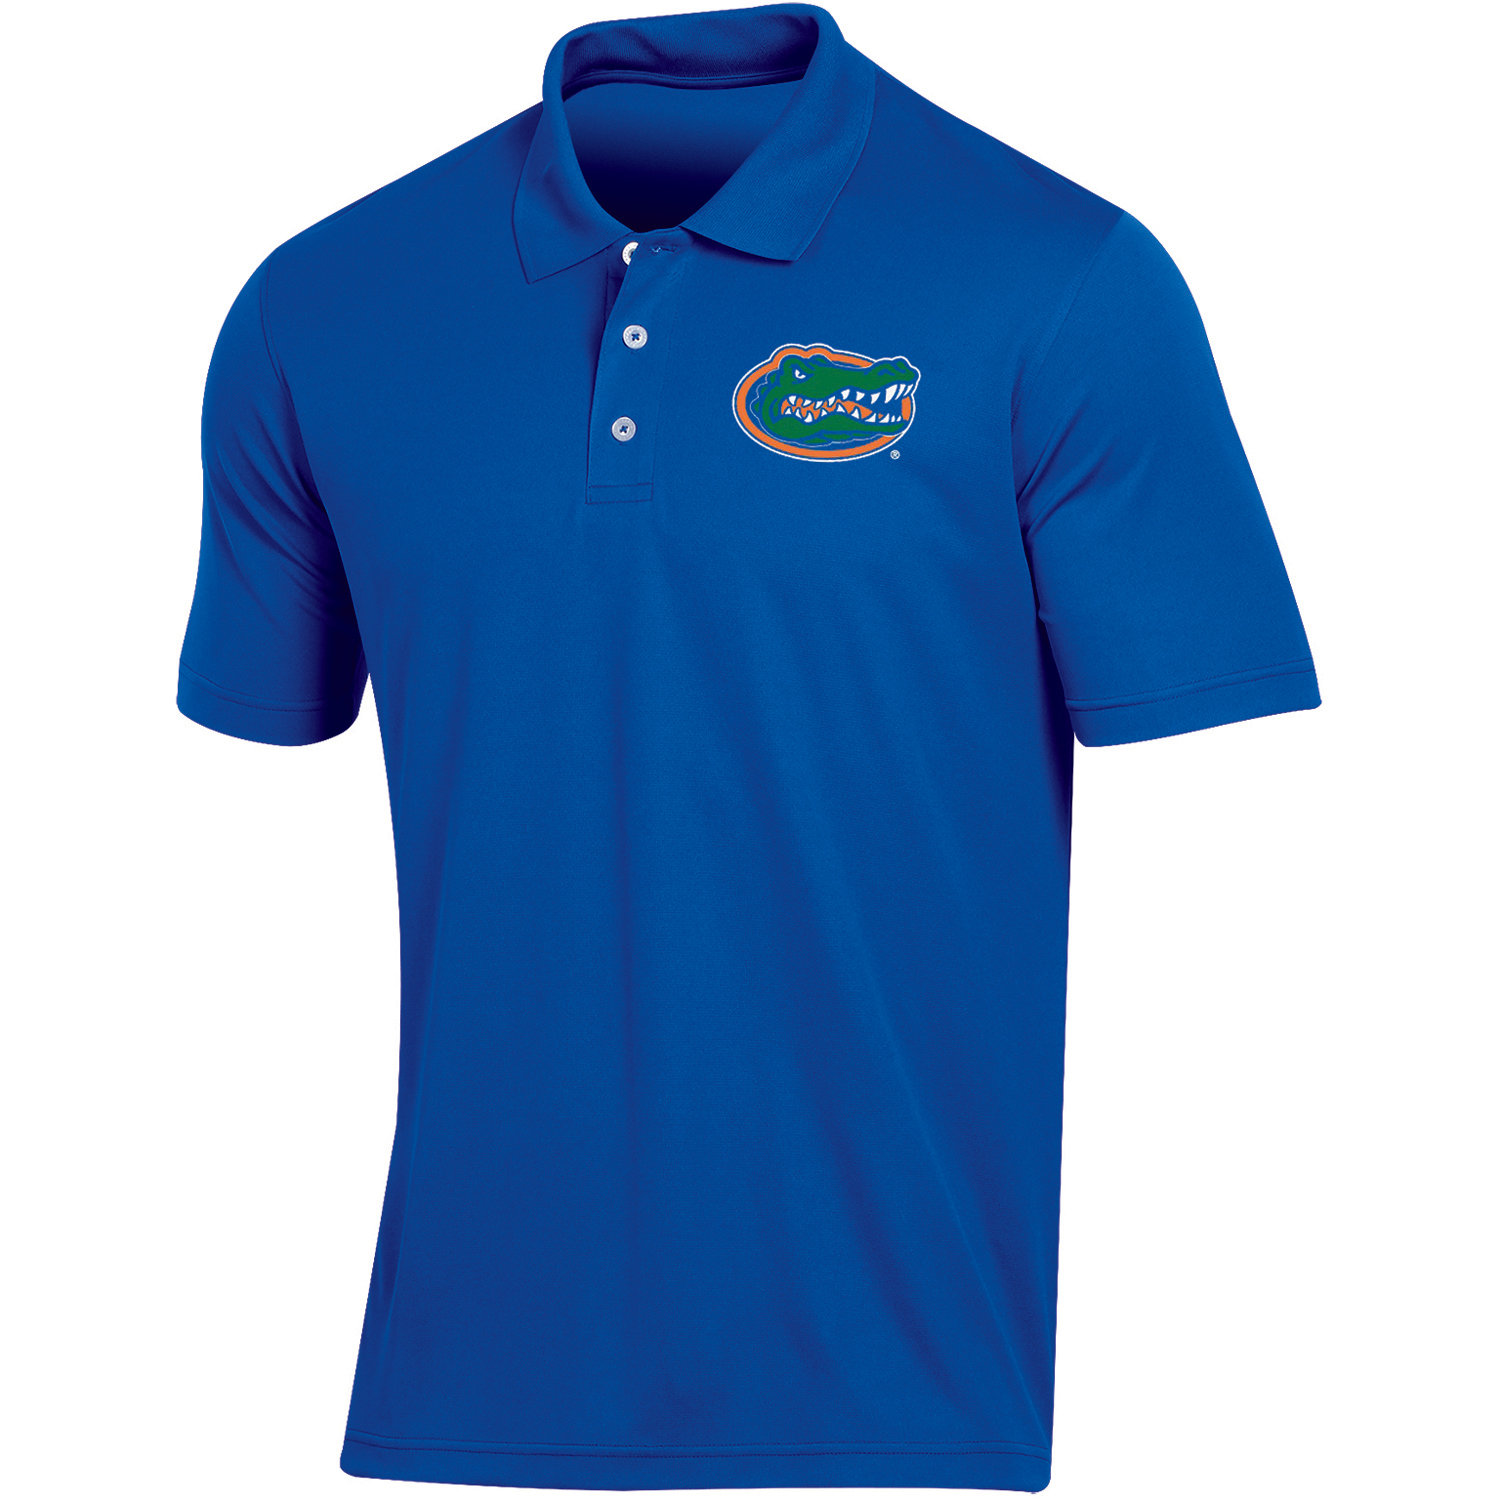 Men's Russell Royal Florida Gators Classic Fit Synthetic Polo